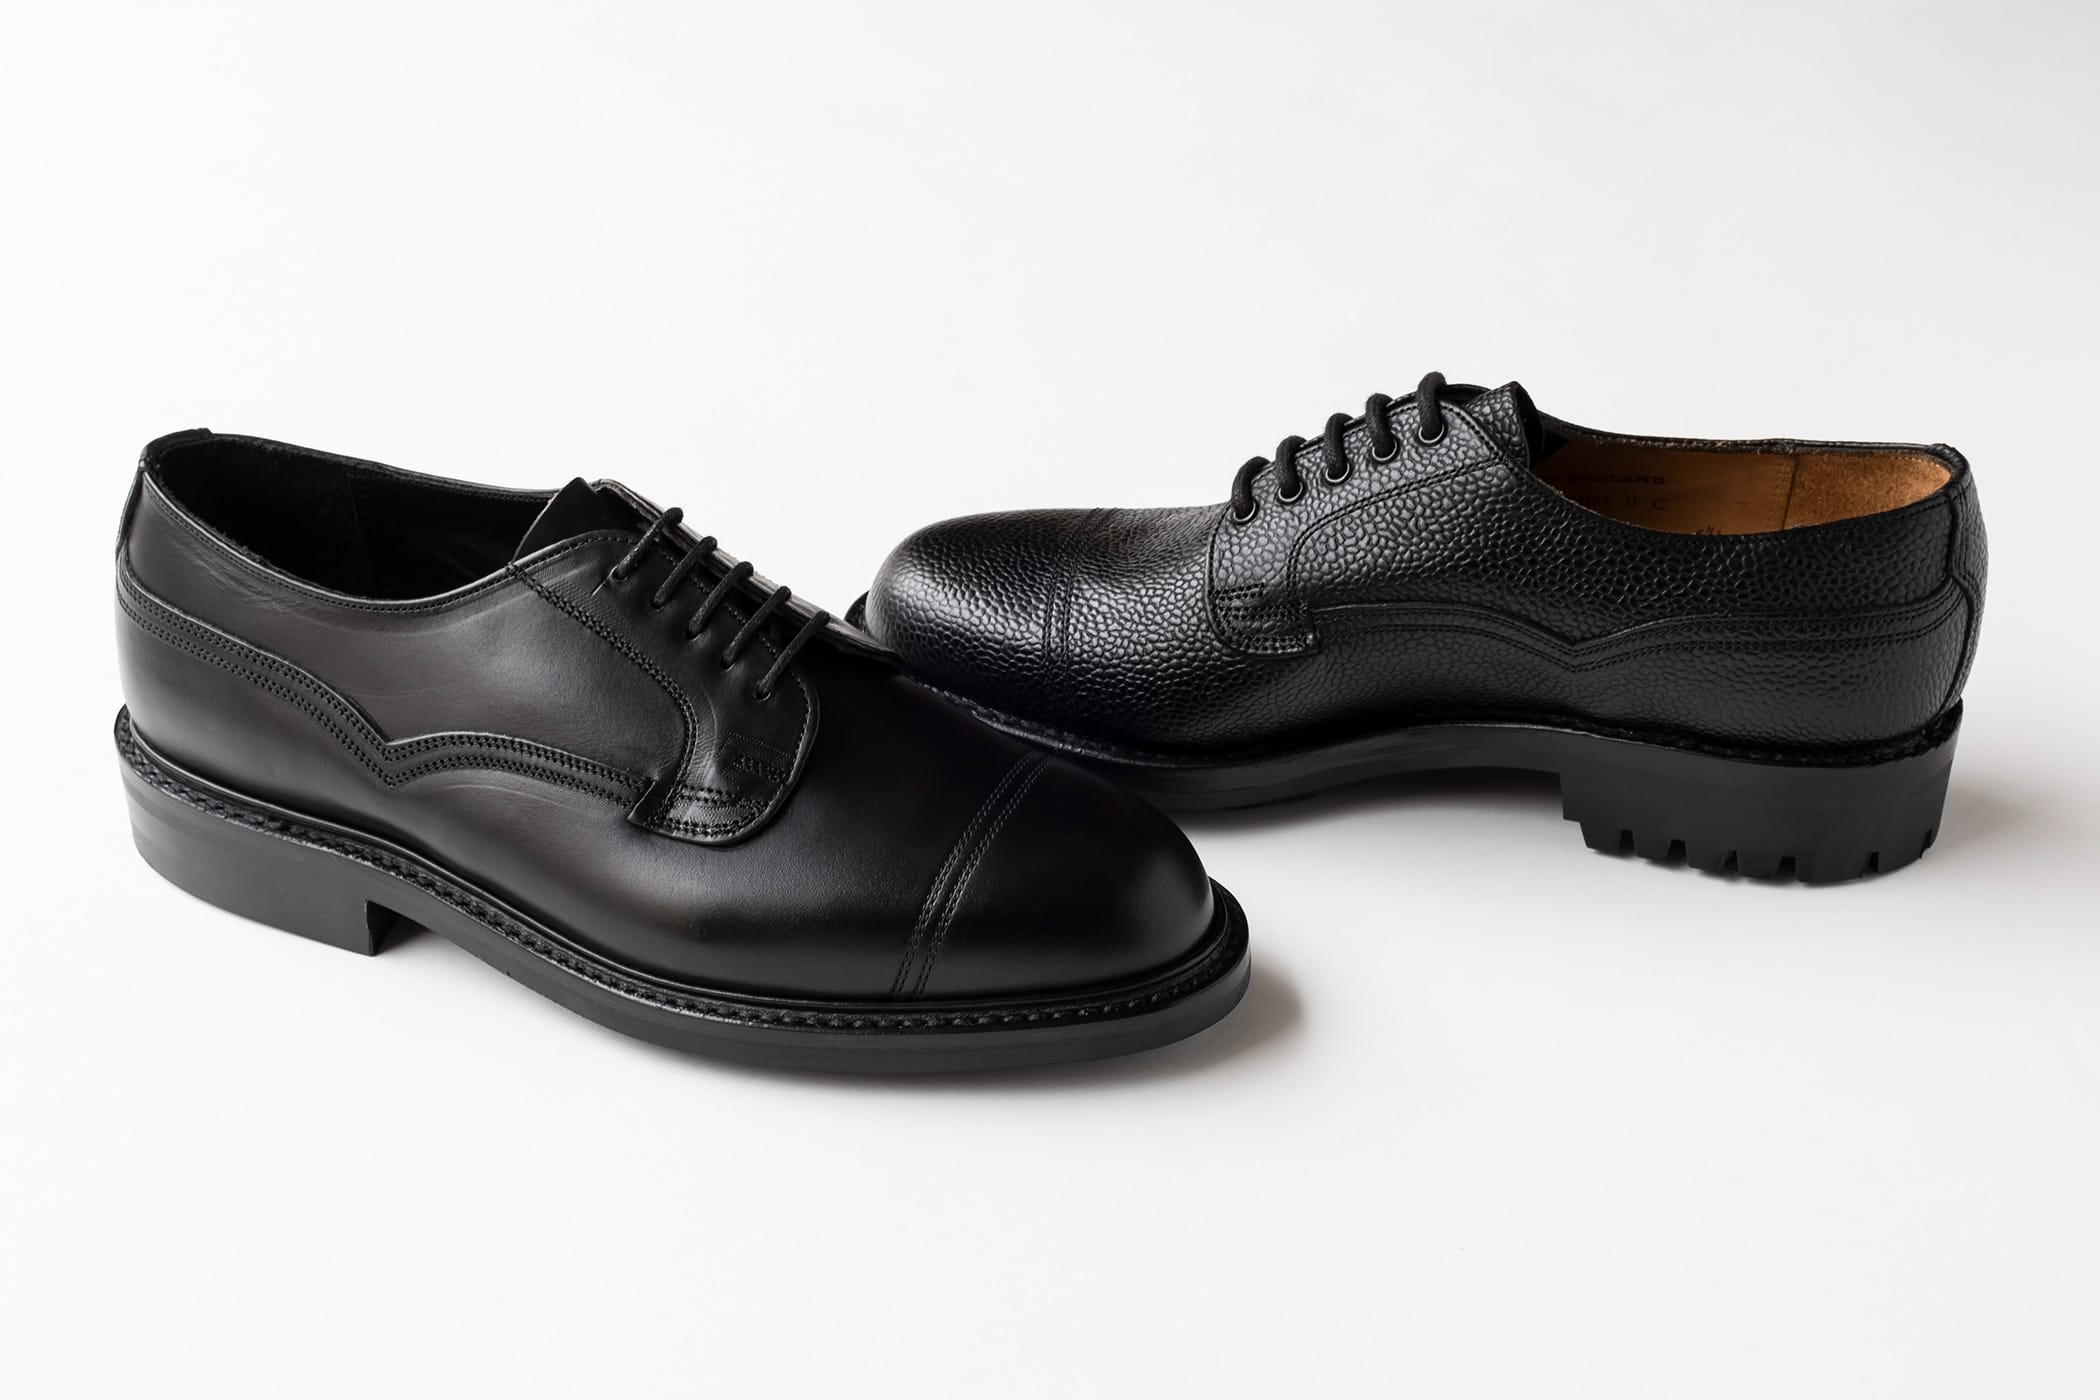 It carries BRITISH MADE Ken Gon hybrid die night sole to balance functionality with sharp looks